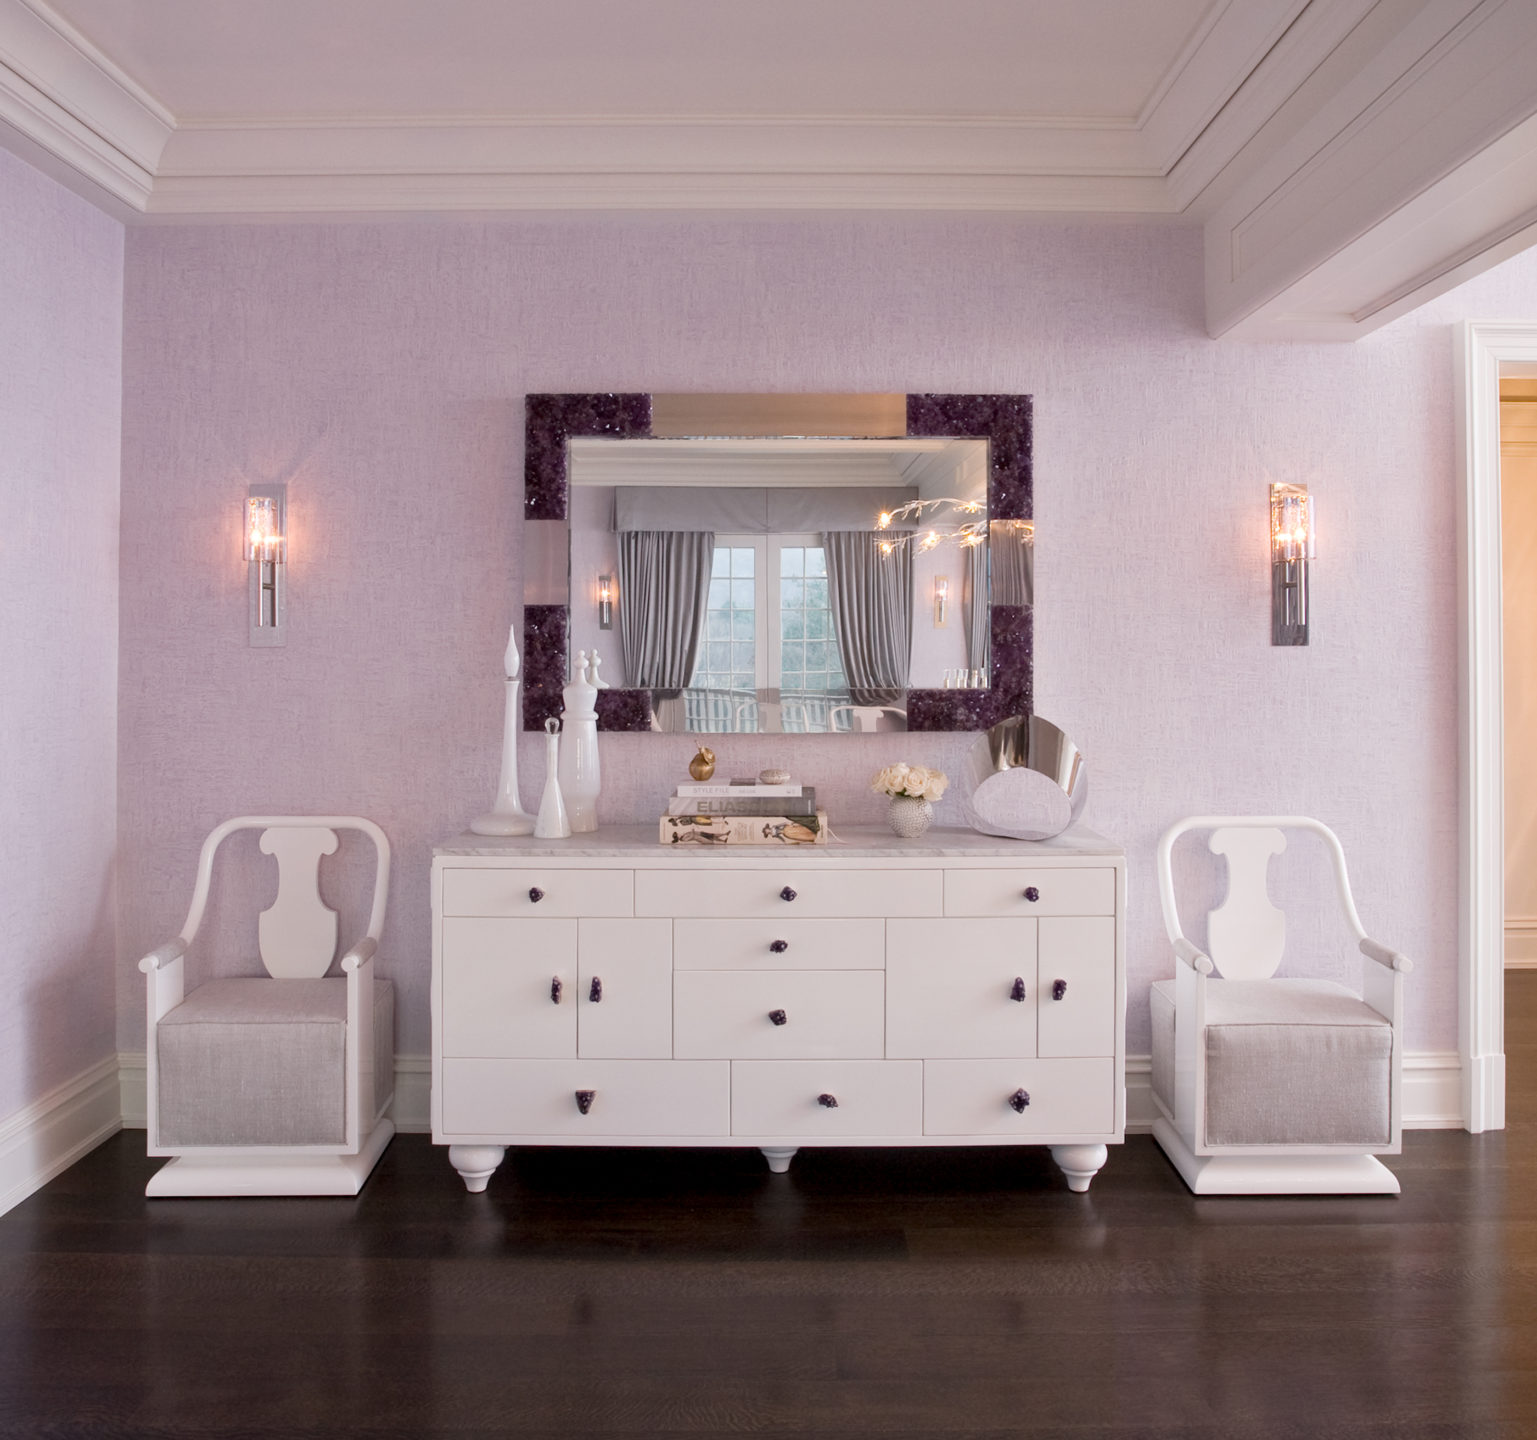 NATURAL-BEAUTY-mirror-3-nicole-fuller-product-information